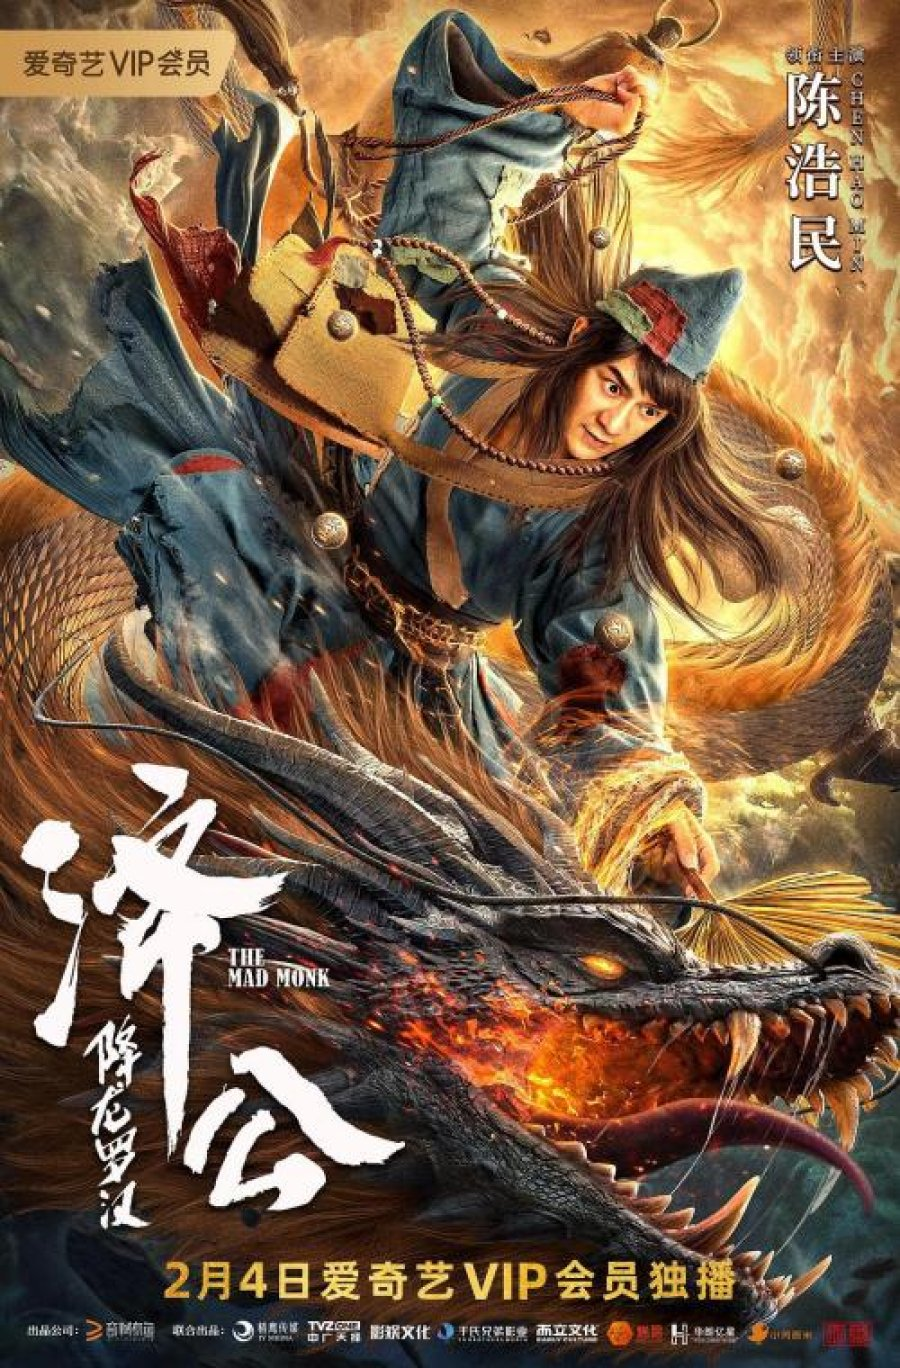 The Mad Monk (2021) Full Movie [In Chinese] With Hindi Subtitles | WebRip 720p [1XBET]